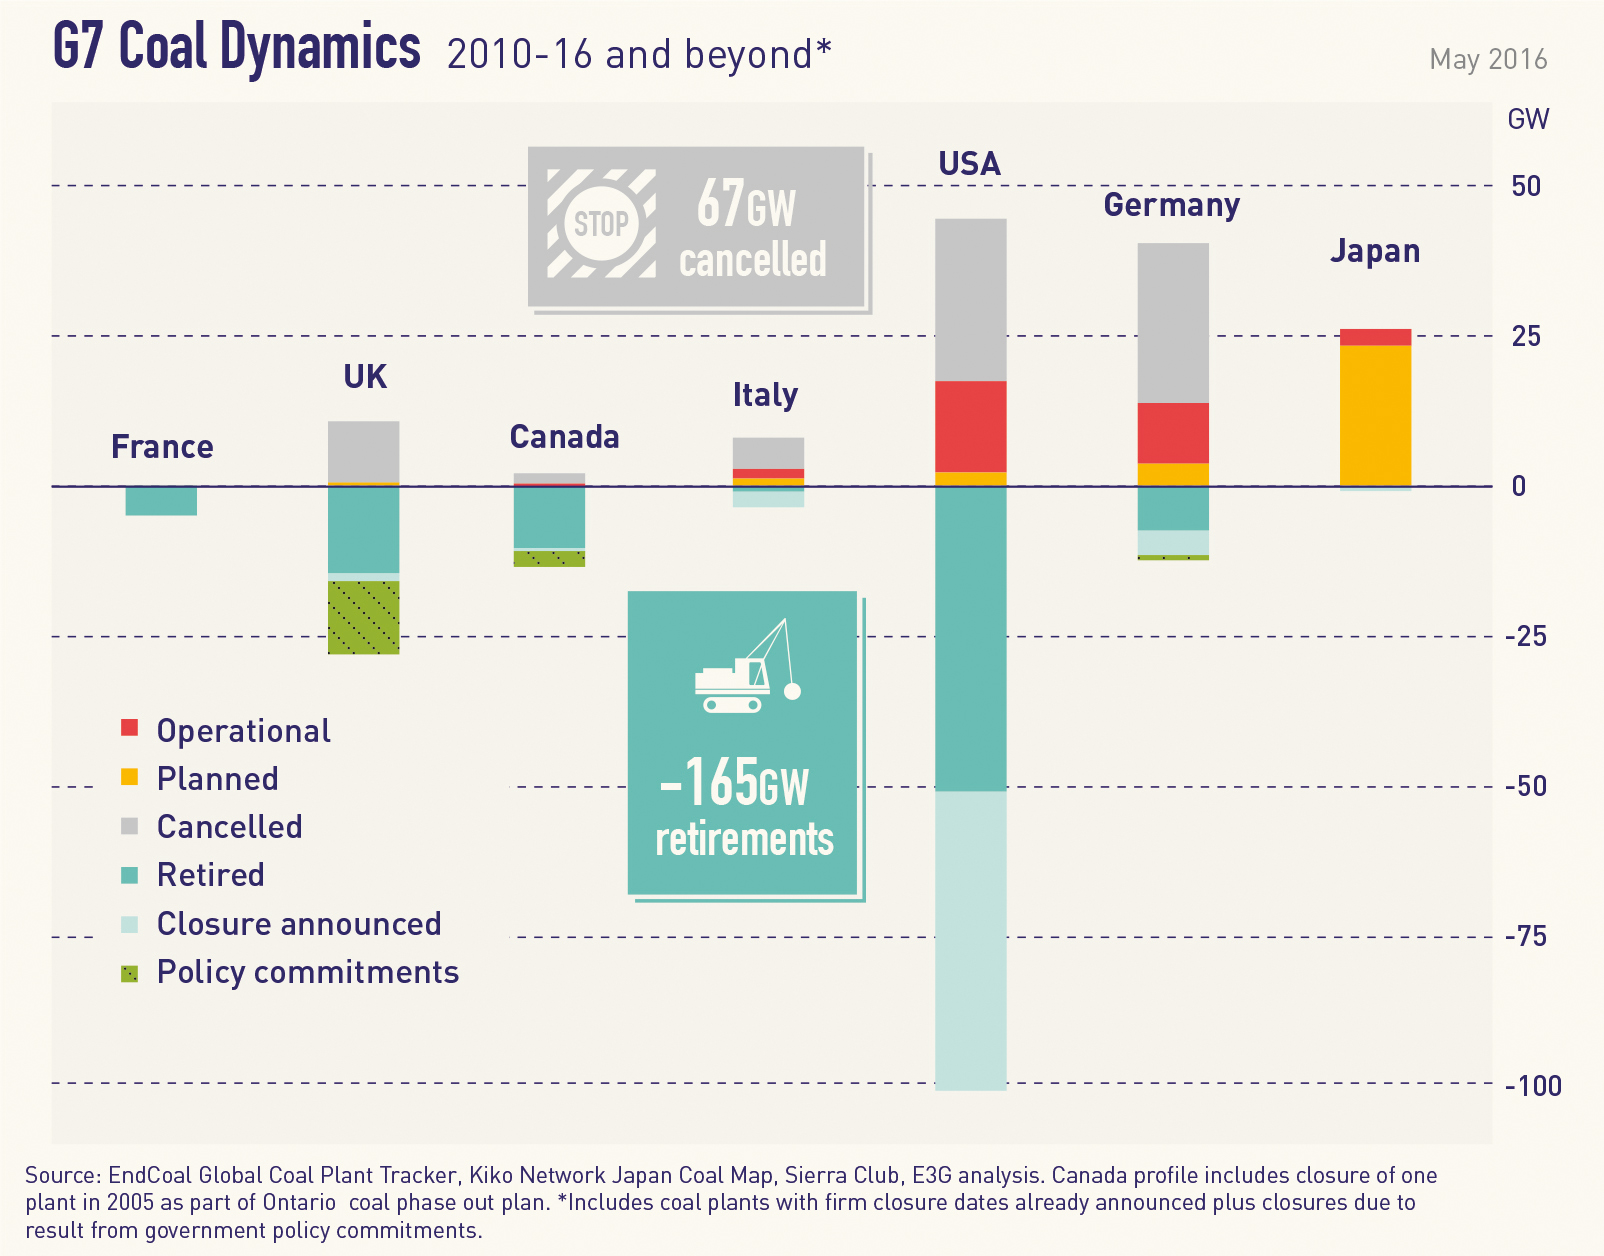 Japan 'swimming against current' when it comes to phase out coal